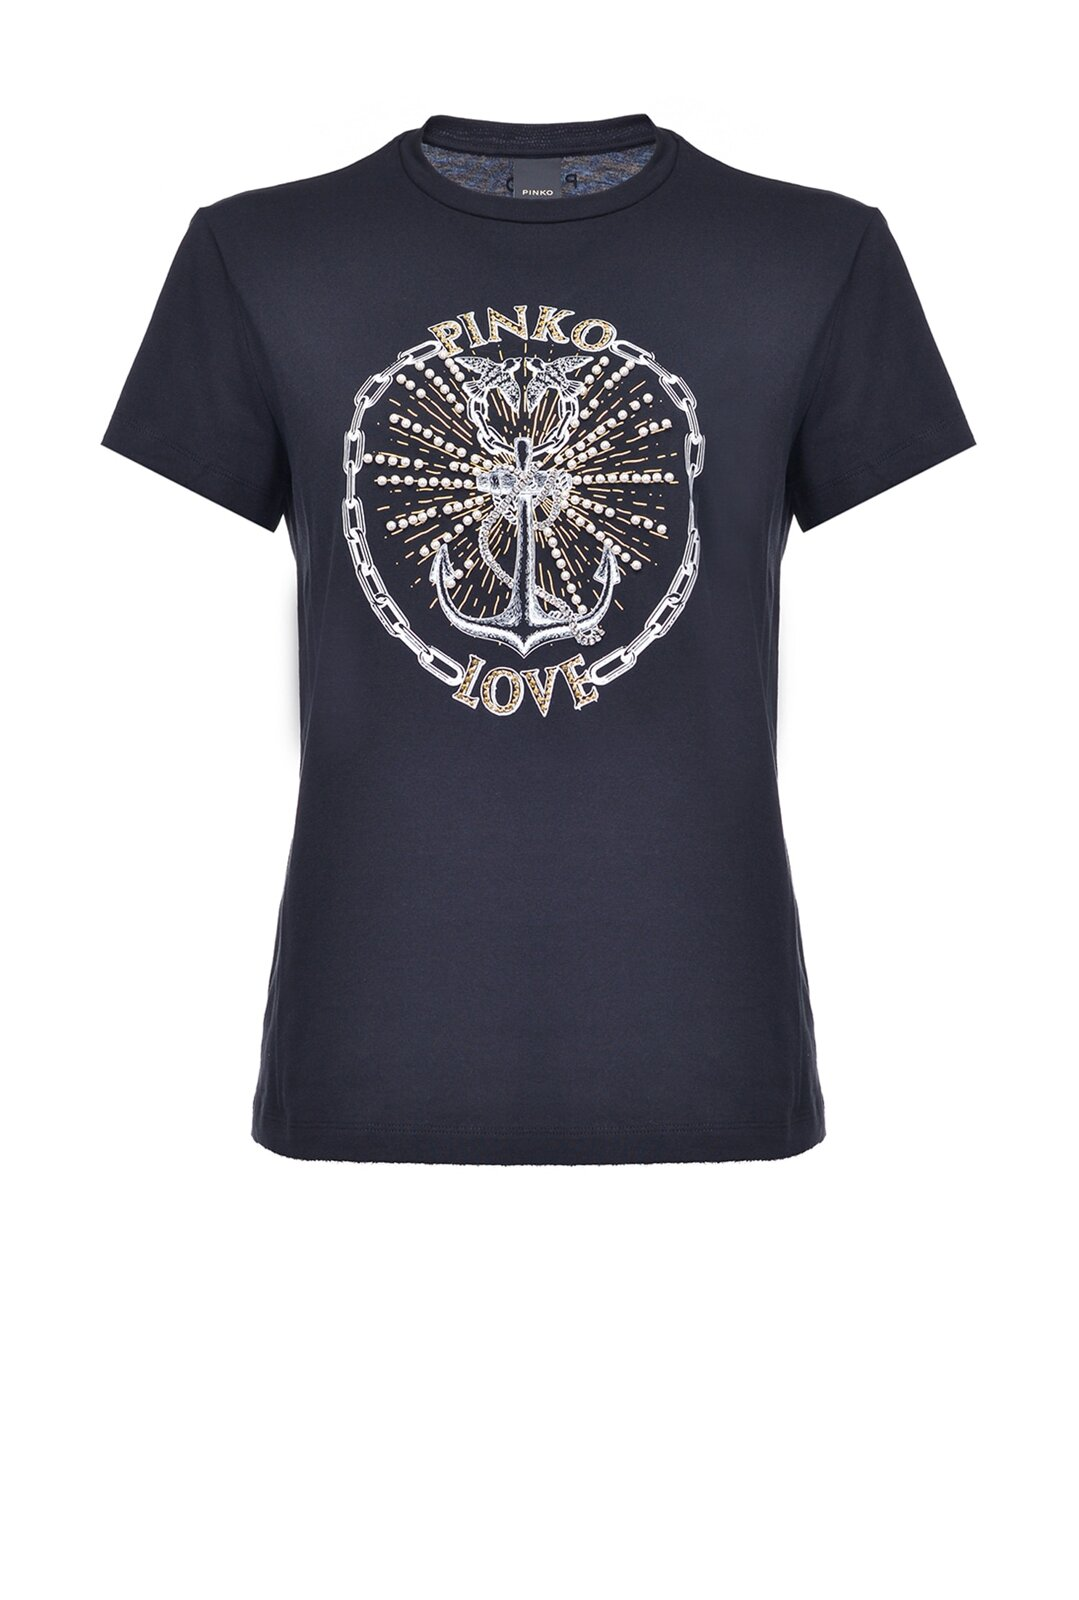 Pinko Love T-Shirt With Anchor Print - Pinko